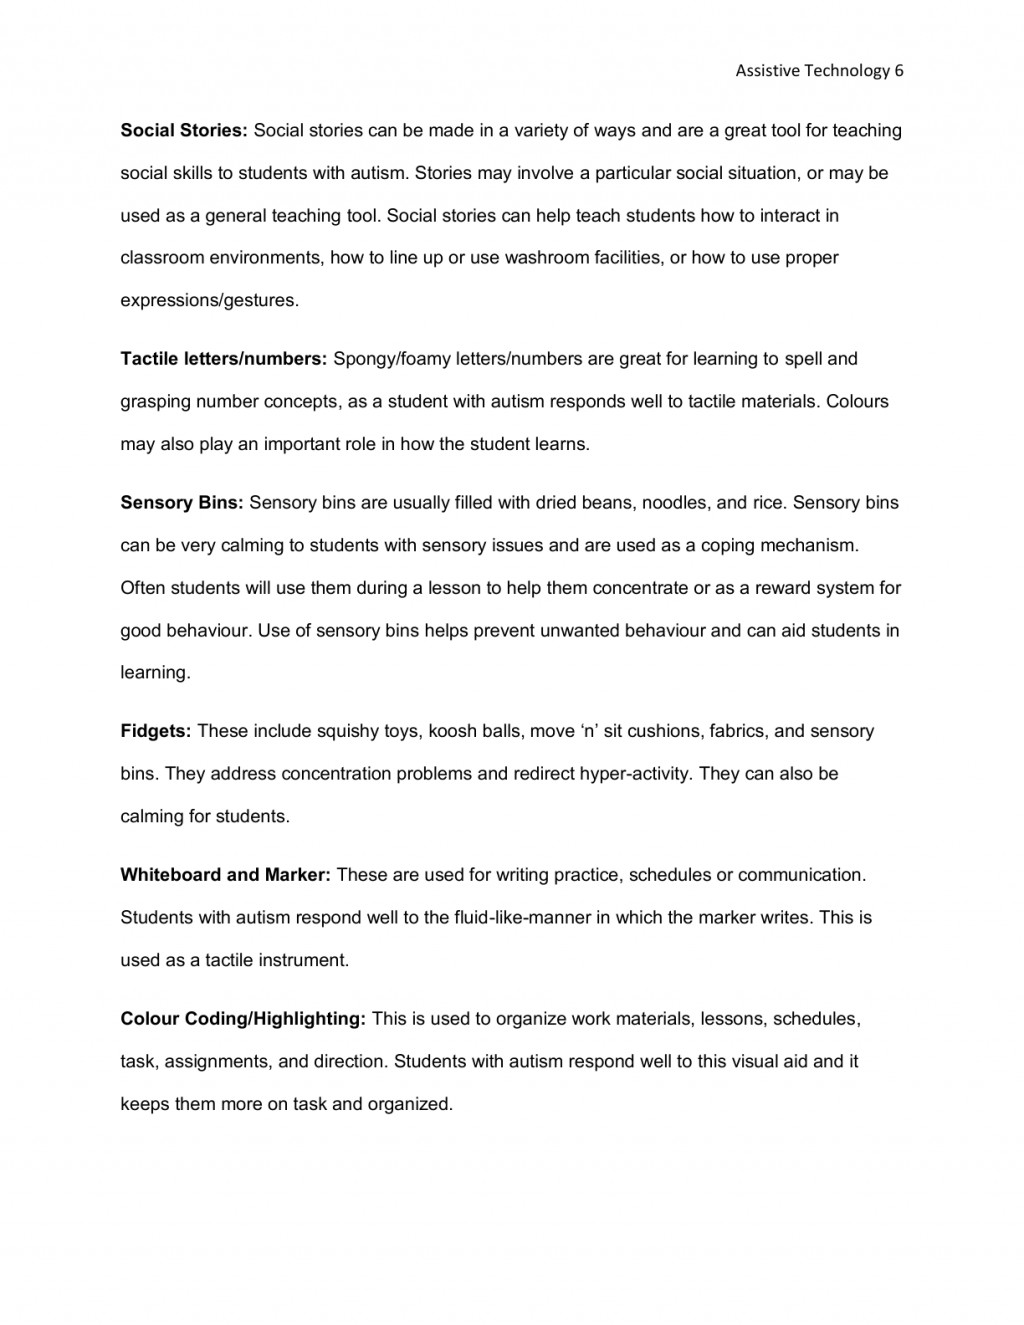 009 Argumentative Essay Pdf Assistive Technology For Students Who Have Autism6 Unique Outline Sample Download High School Large